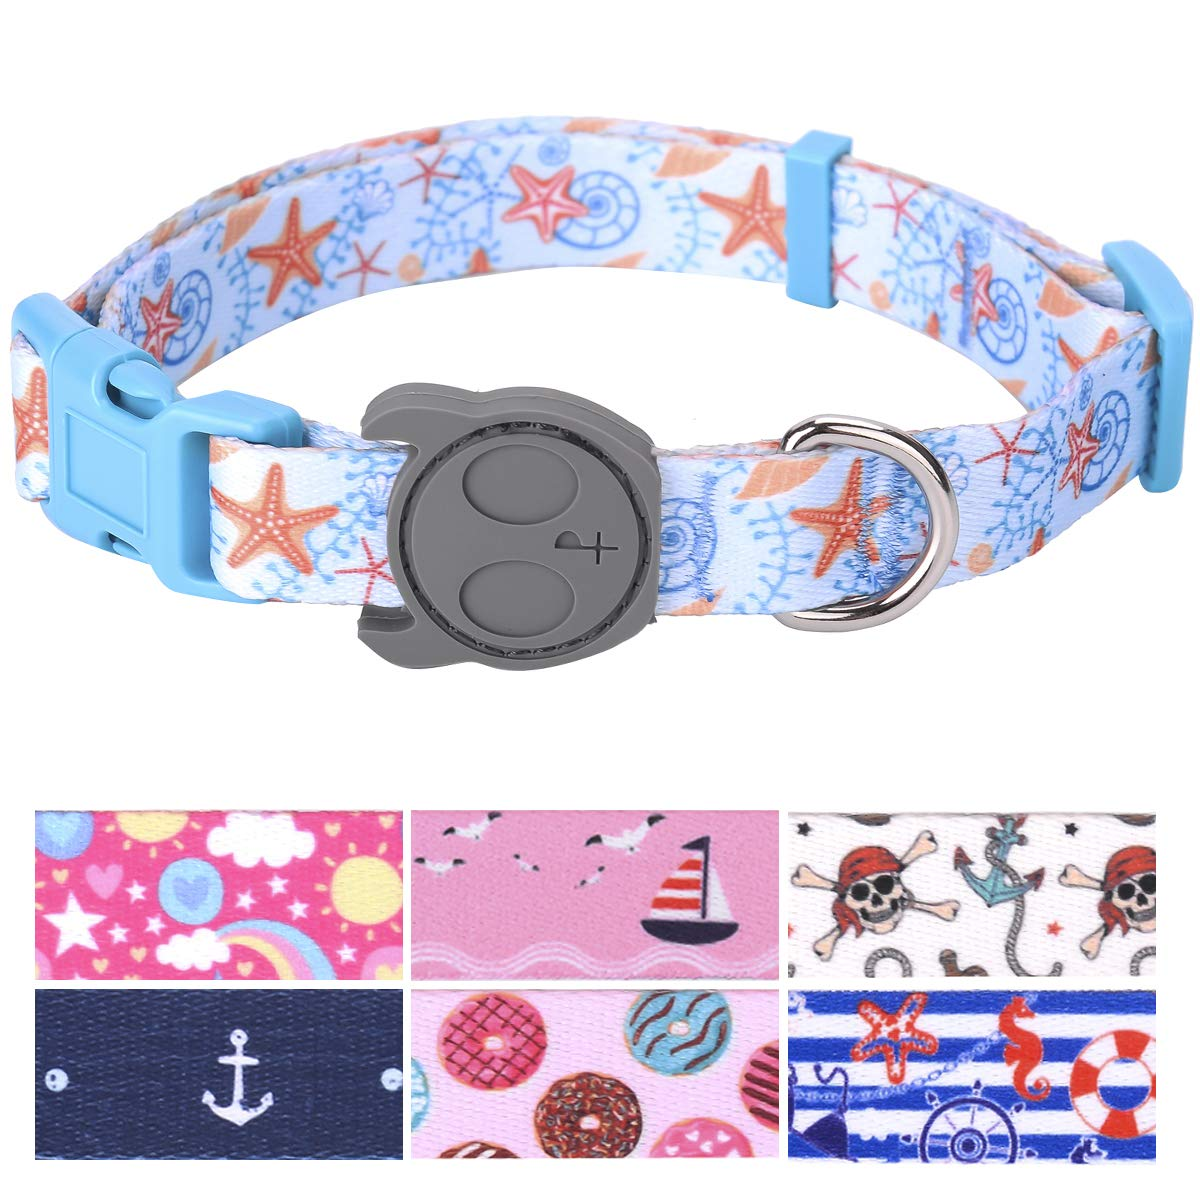 Large PetANTastic Best Adjustable Large Dog Collar Durable Soft & Heavy Duty with Cool Summer Beach Design, Outdoor & Indoor use Comfort Dog Collar for Girls, Boys, Puppy, Adults